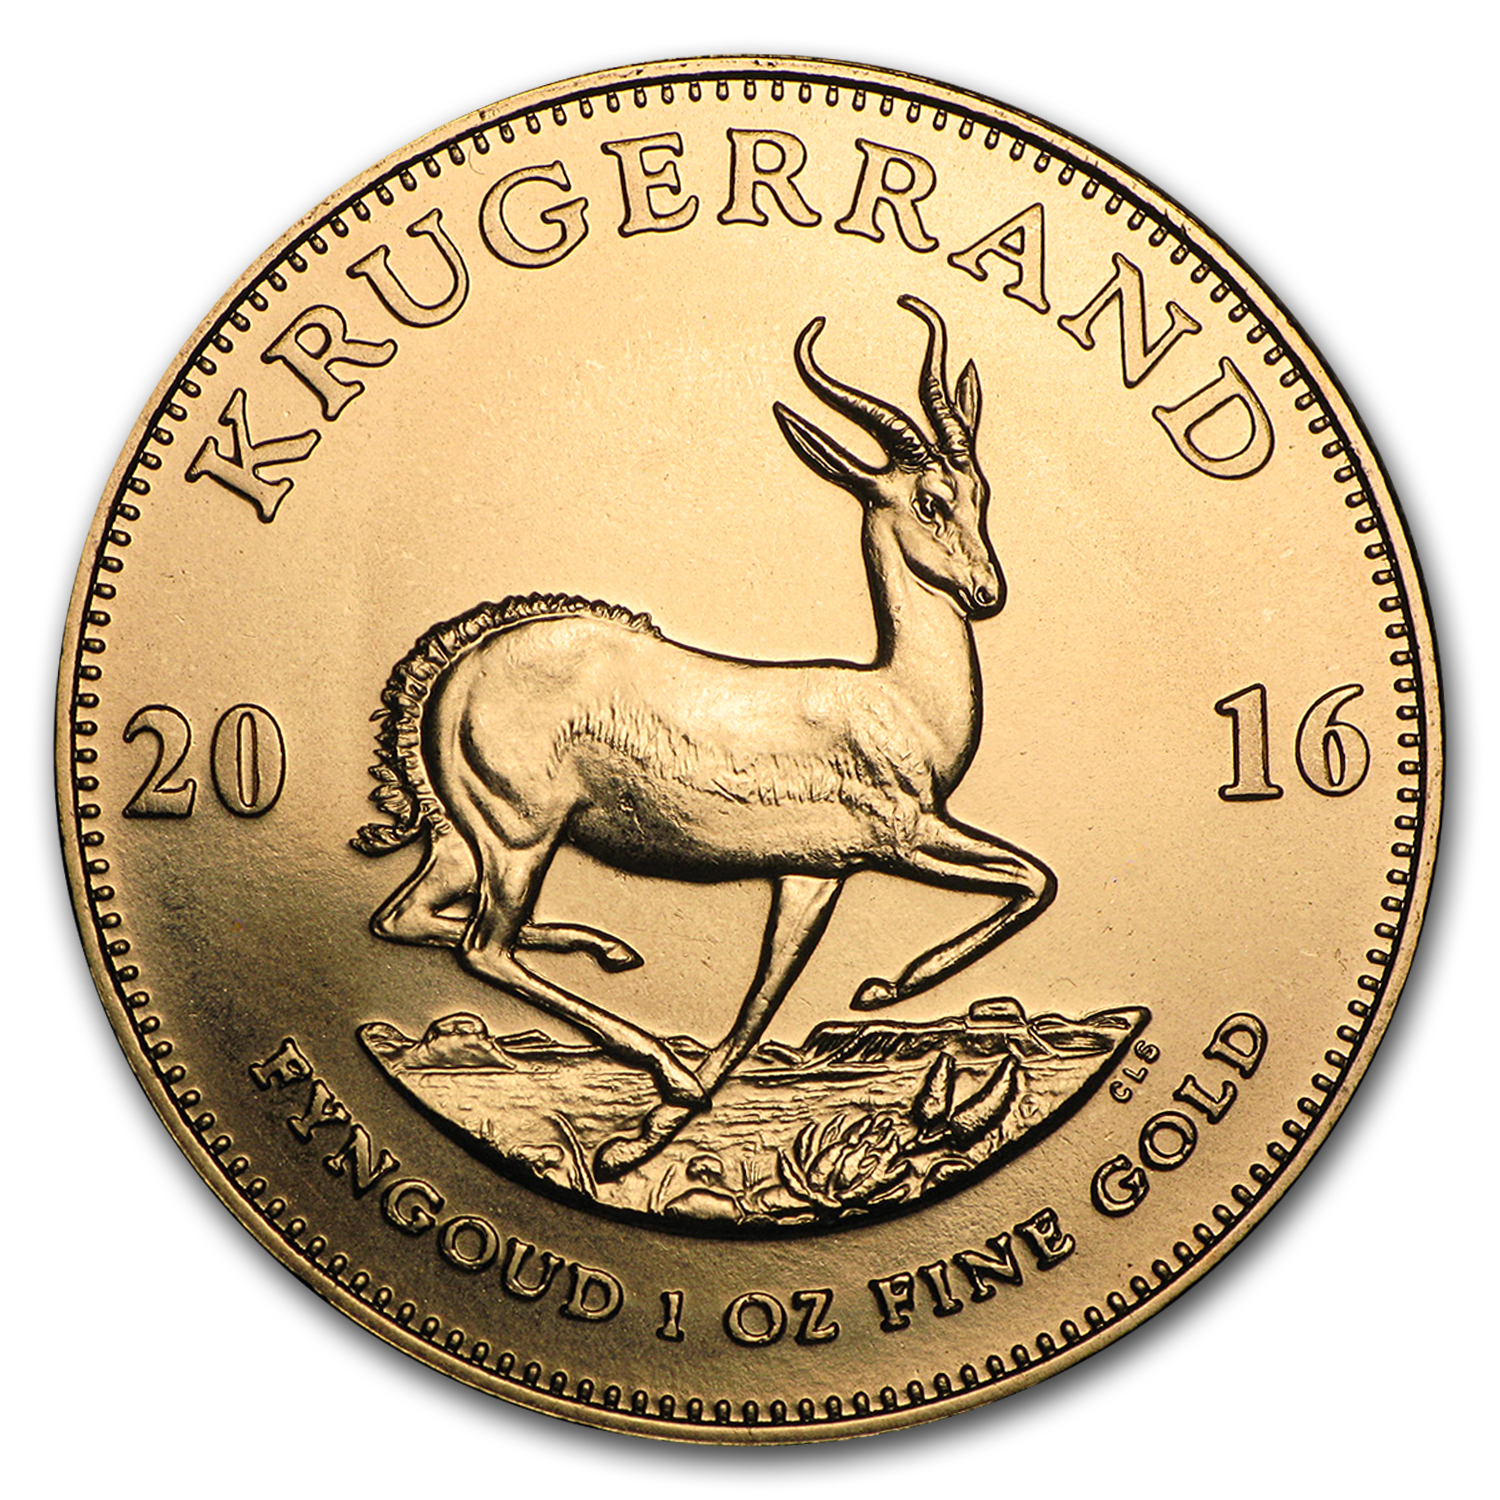 2016 South Africa 1 oz Gold Krugerrand BU